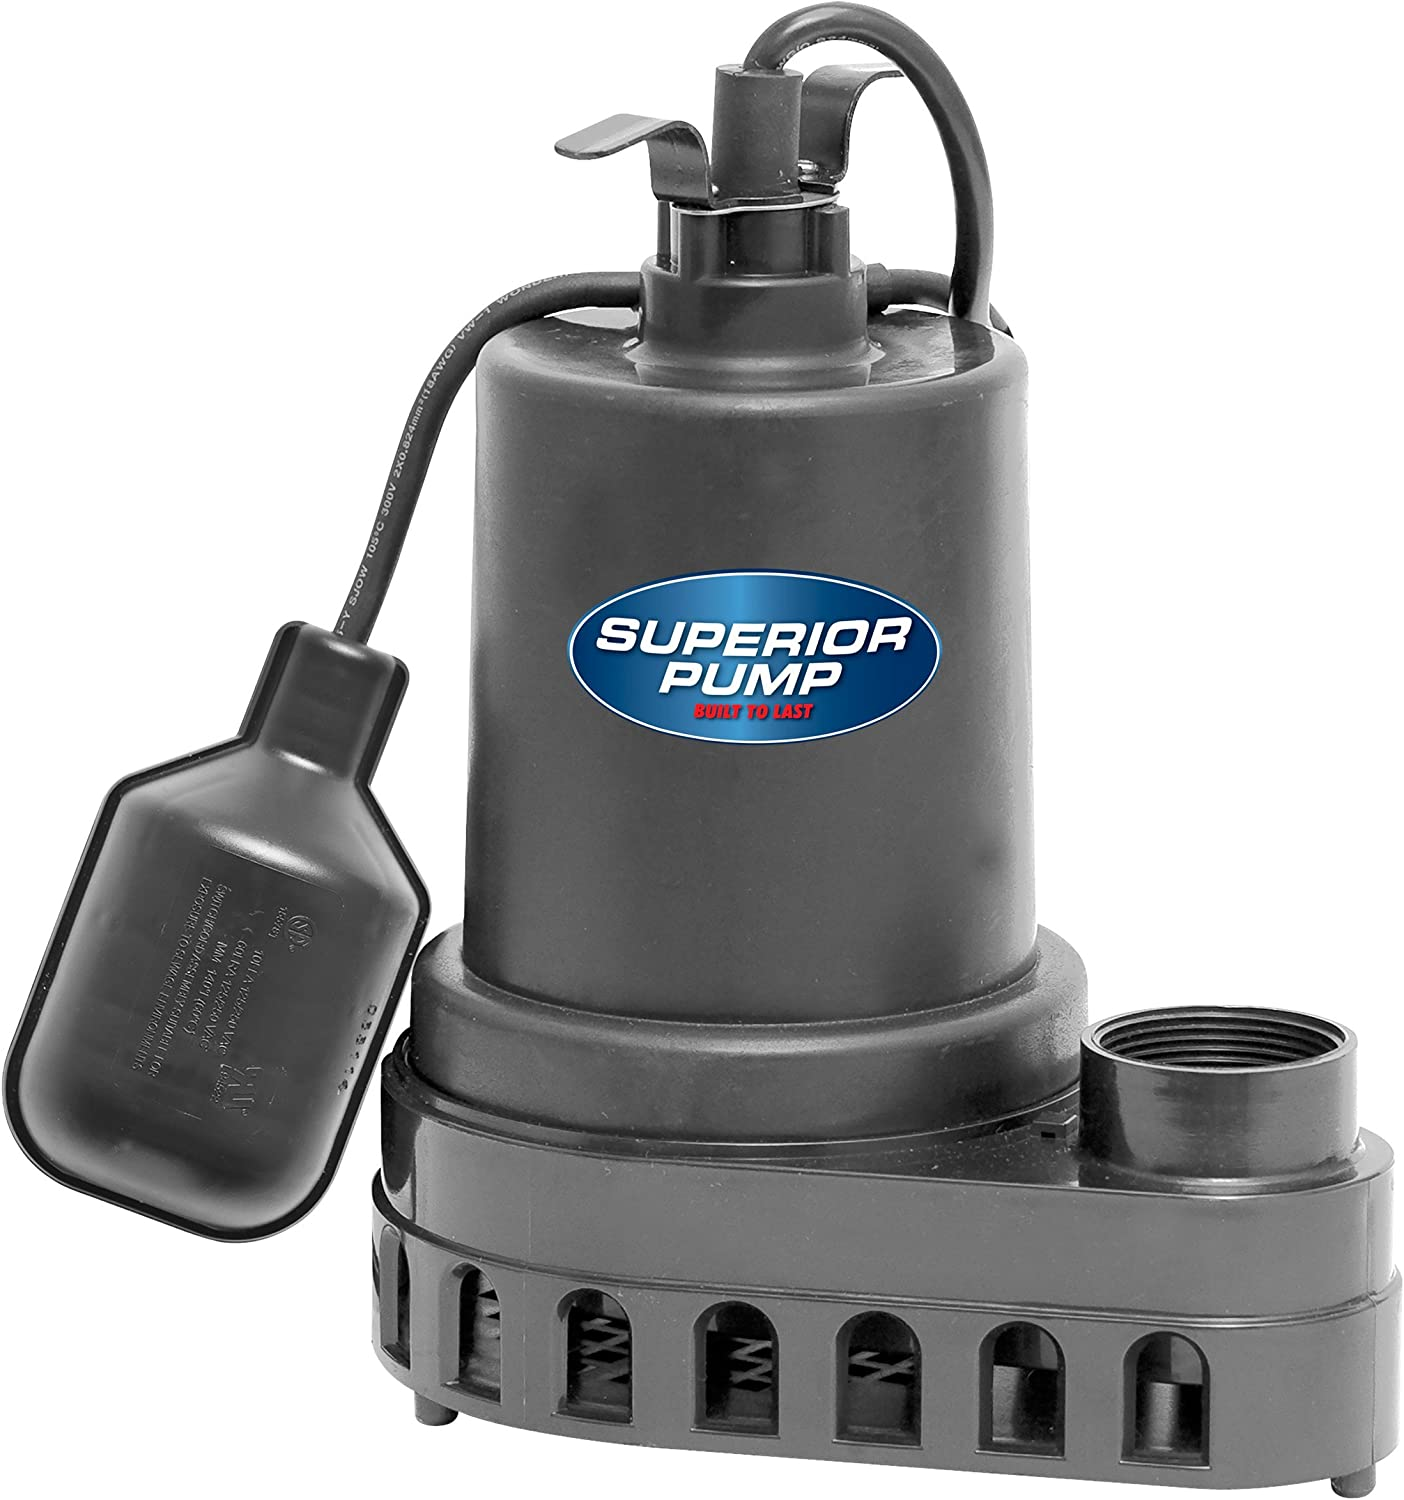 Superior Pump 92370 1/3 HP Thermoplastic Submersible Sump Pump with Tethered Float Switch